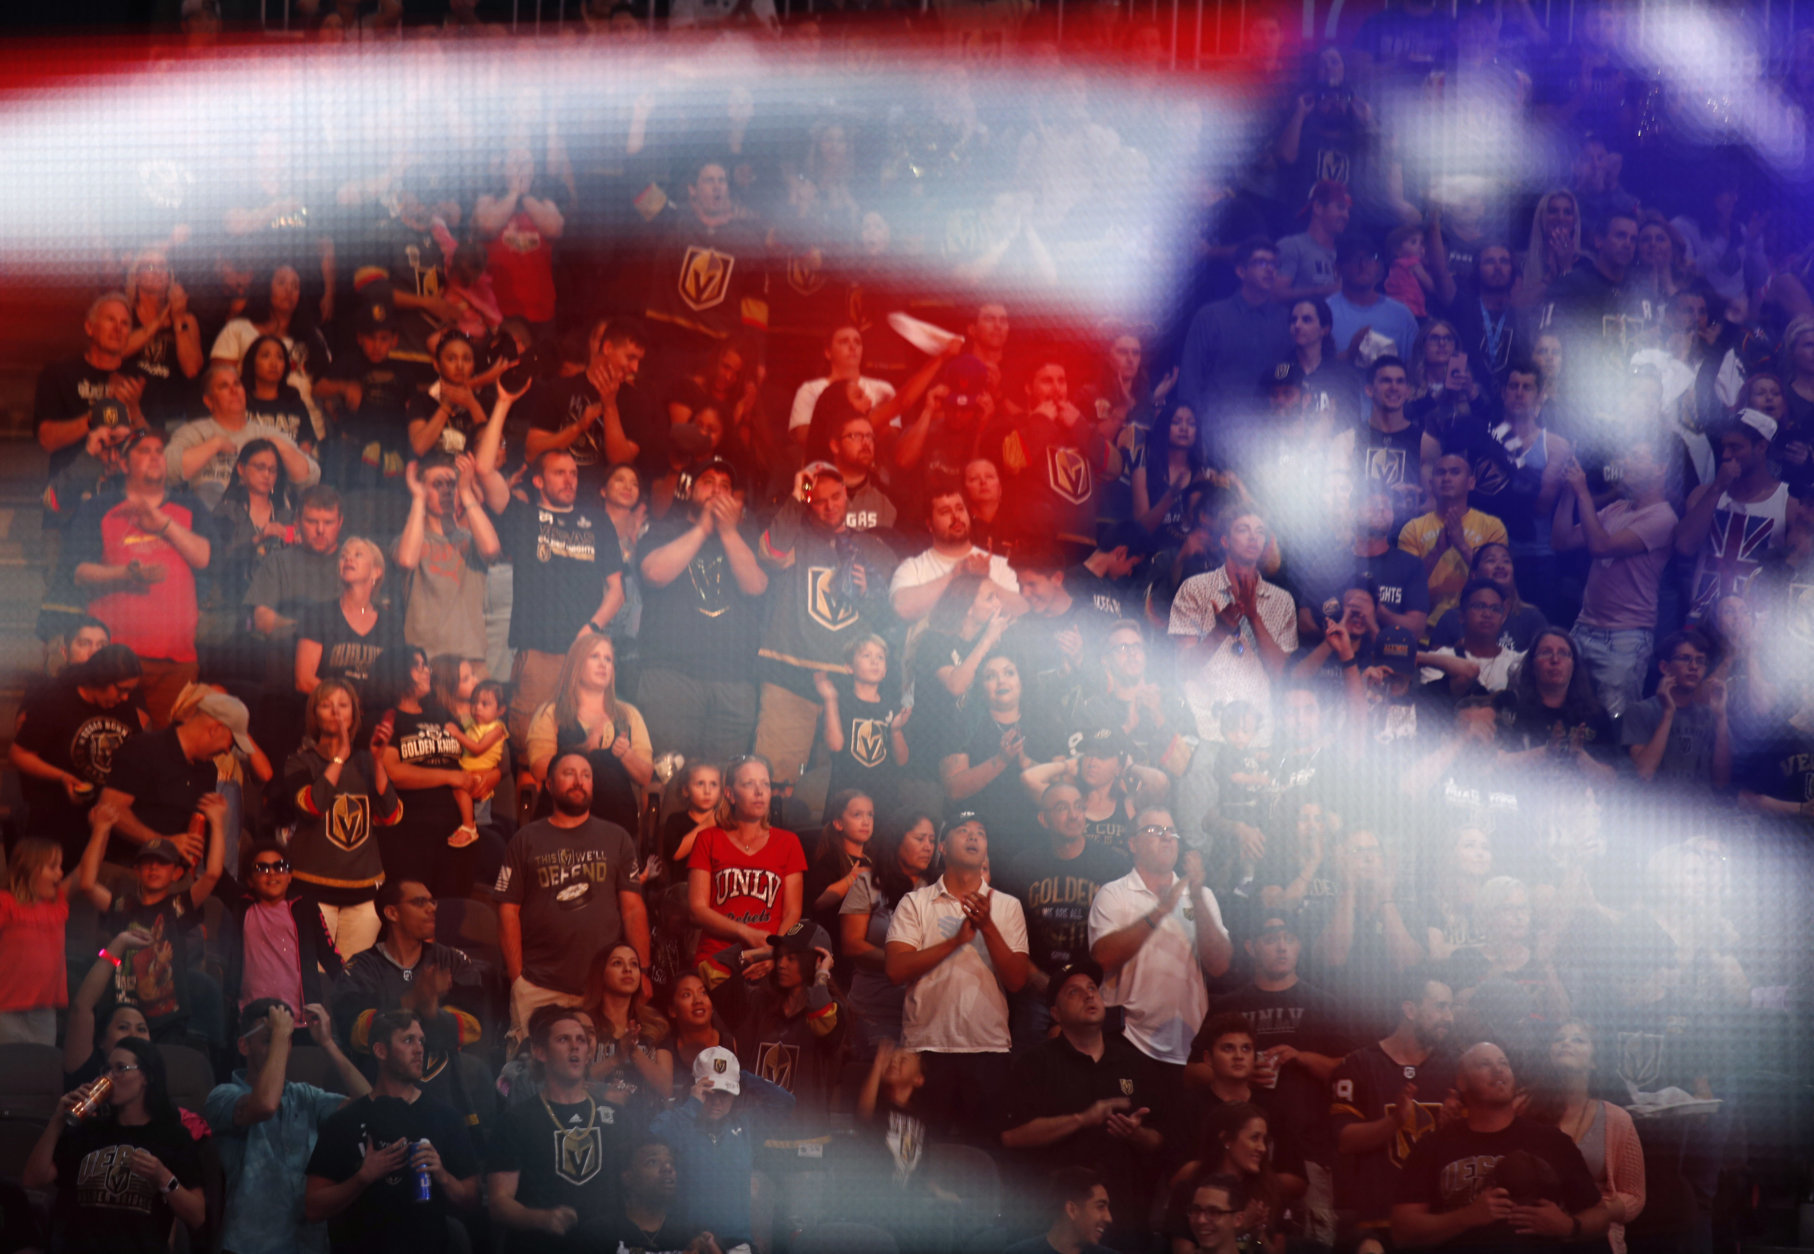 Fans stand for the national anthem during a watch party for Game 4 of the NHL hockey Stanley Cup Final between the Washington Capitals and the Vegas Golden Knights, Monday, June 4, 2018, in Las Vegas. (AP Photo/John Locher)